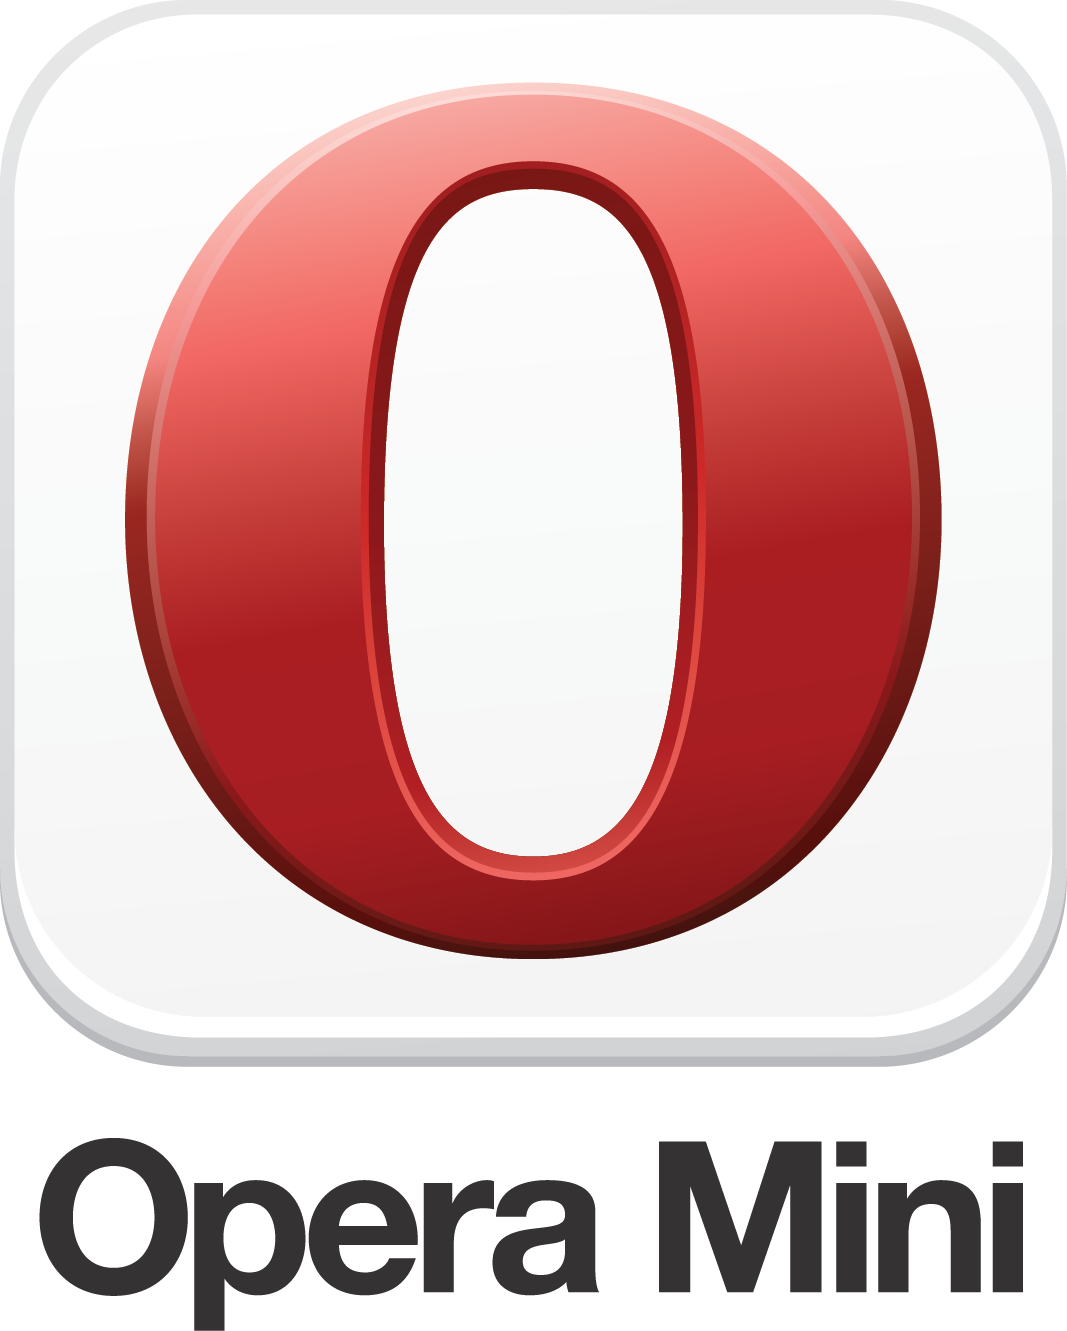 Opera mini 7. 5. 4 apk – download best fast browser for android.